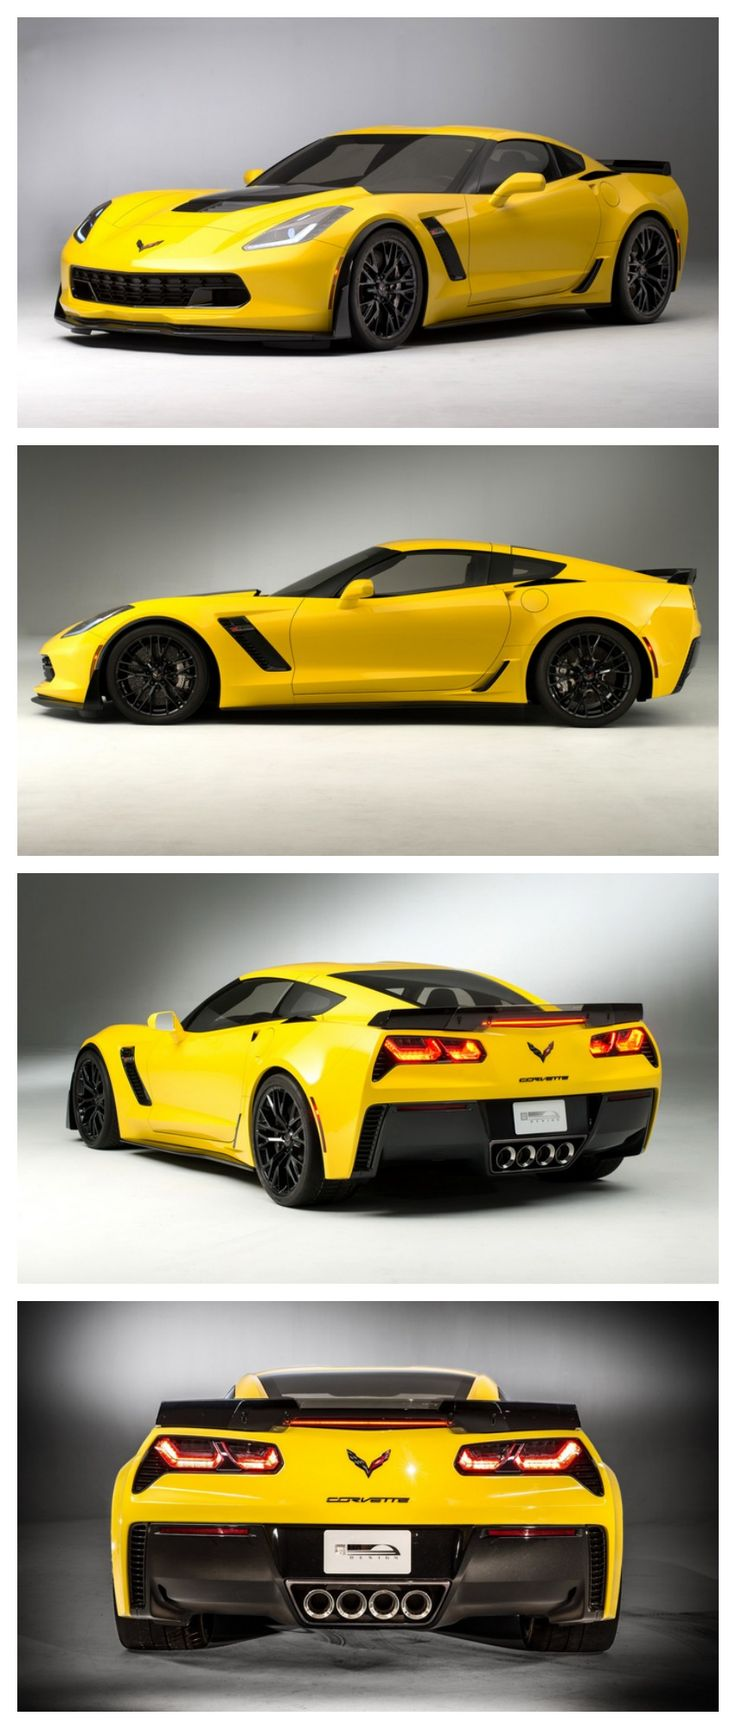 Yea Baby! Supercharged Chevy C7 Stingray #TunerTuesday